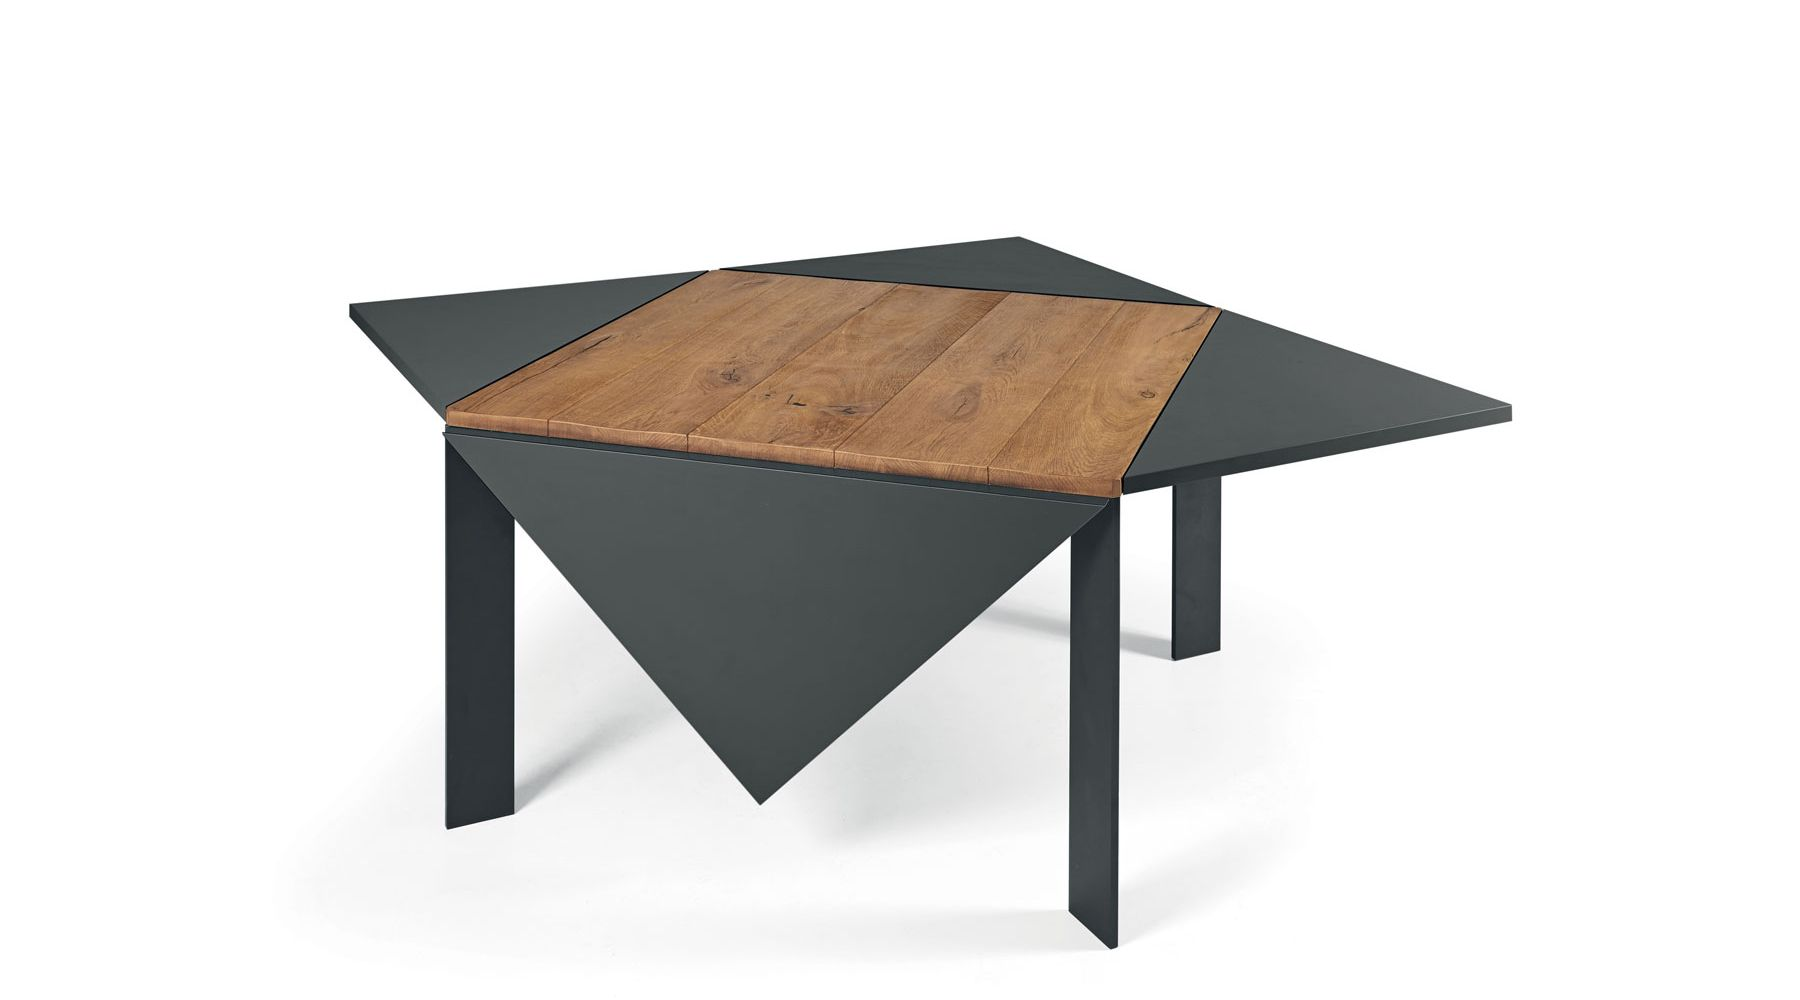 Loto Table Furniture Square Tables Wooden Tables